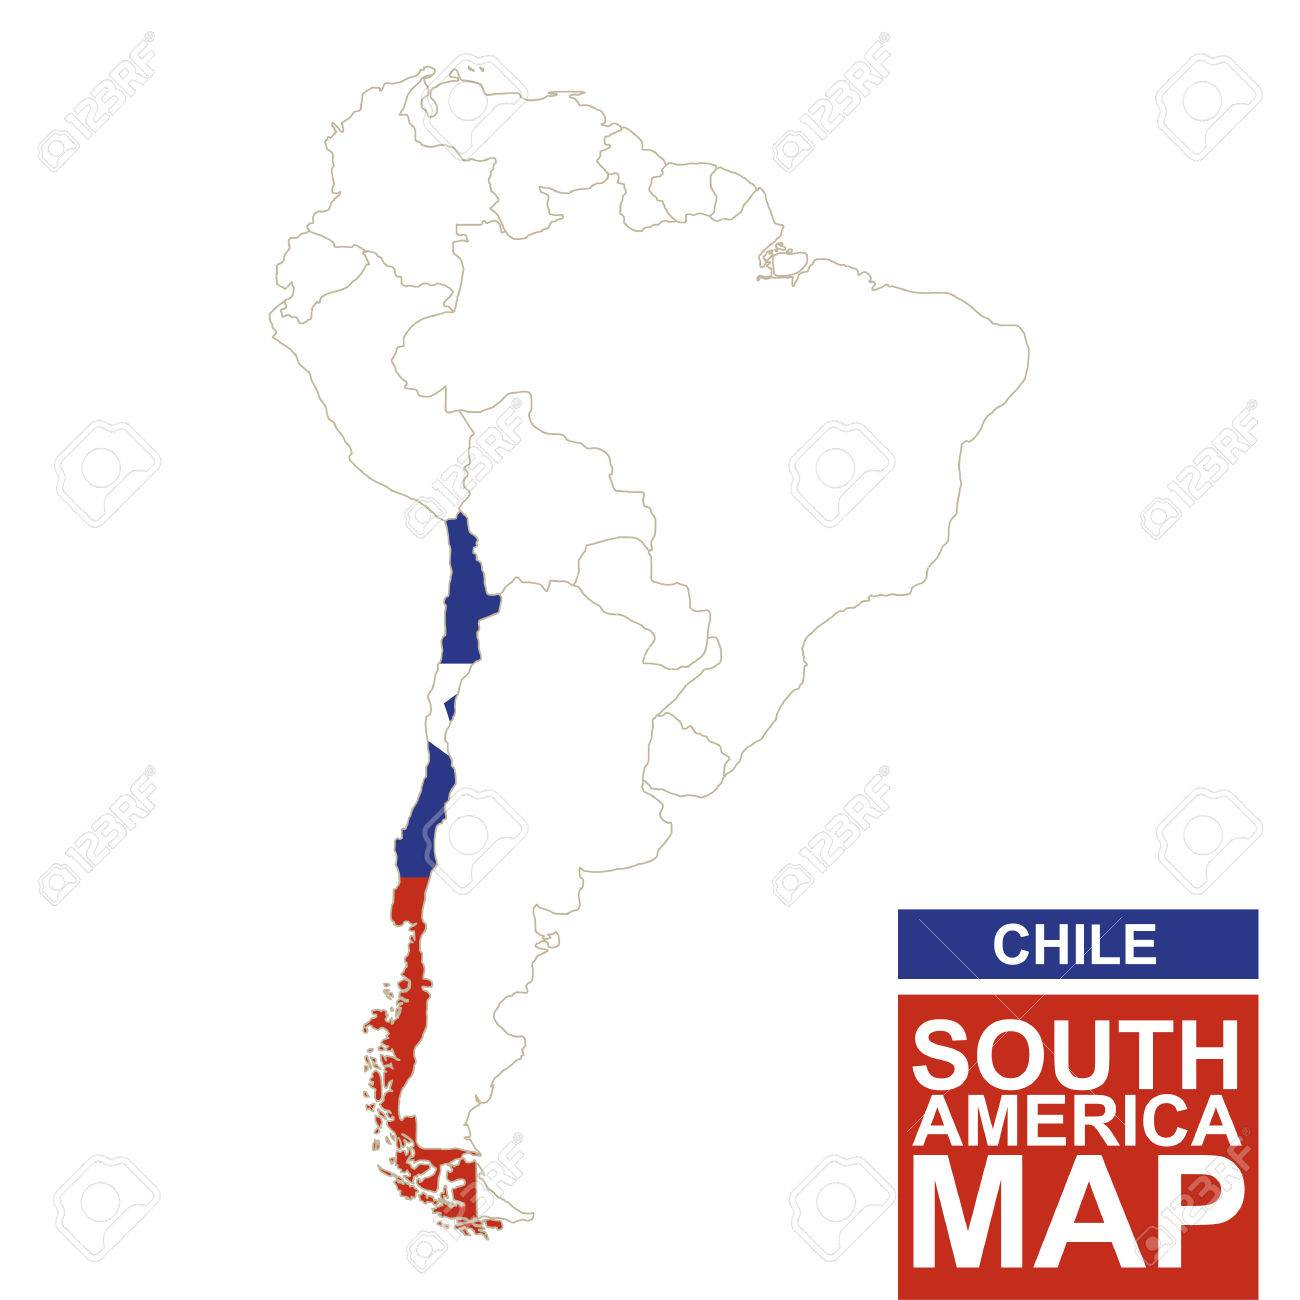 South America Contoured Map With Highlighted Chile. Chile Map ... on